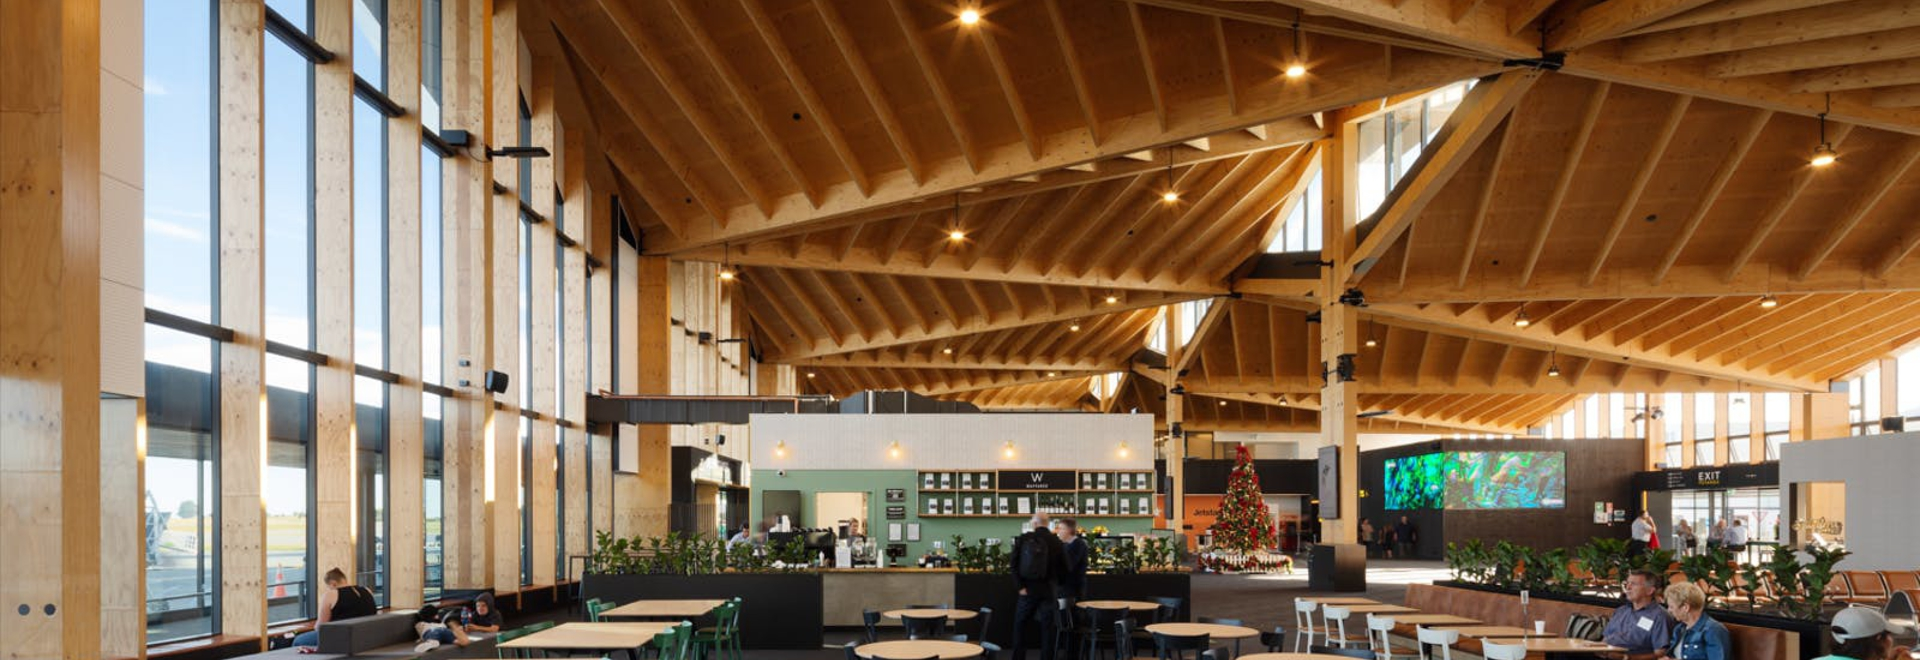 Nelson Airport, Sublime Cofee Project feat. TOOU Chairs with eco-leather seat paddings